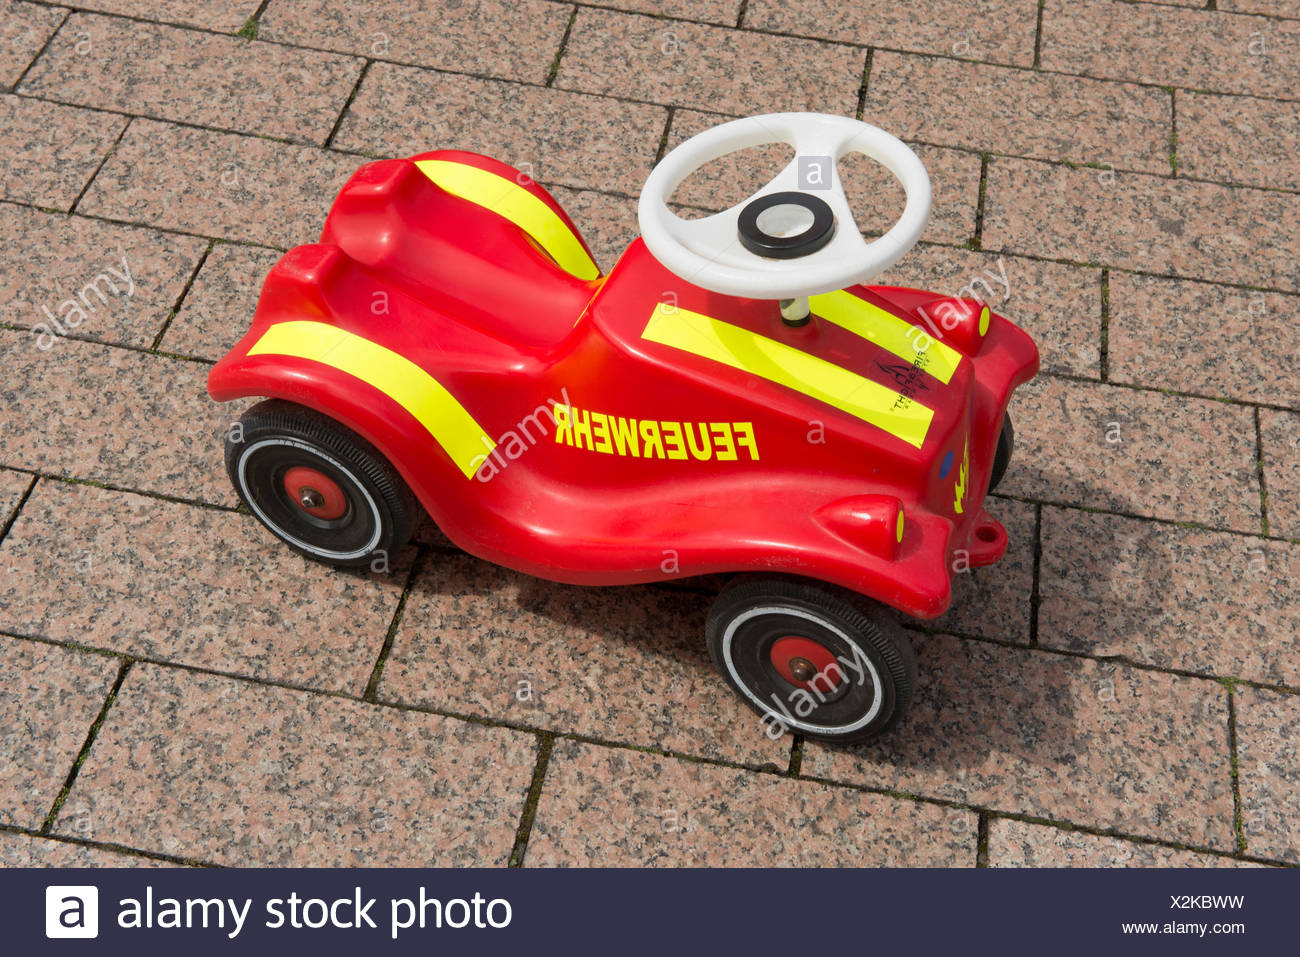 toy fire engines stock photos toy fire engines stock images alamy. Black Bedroom Furniture Sets. Home Design Ideas